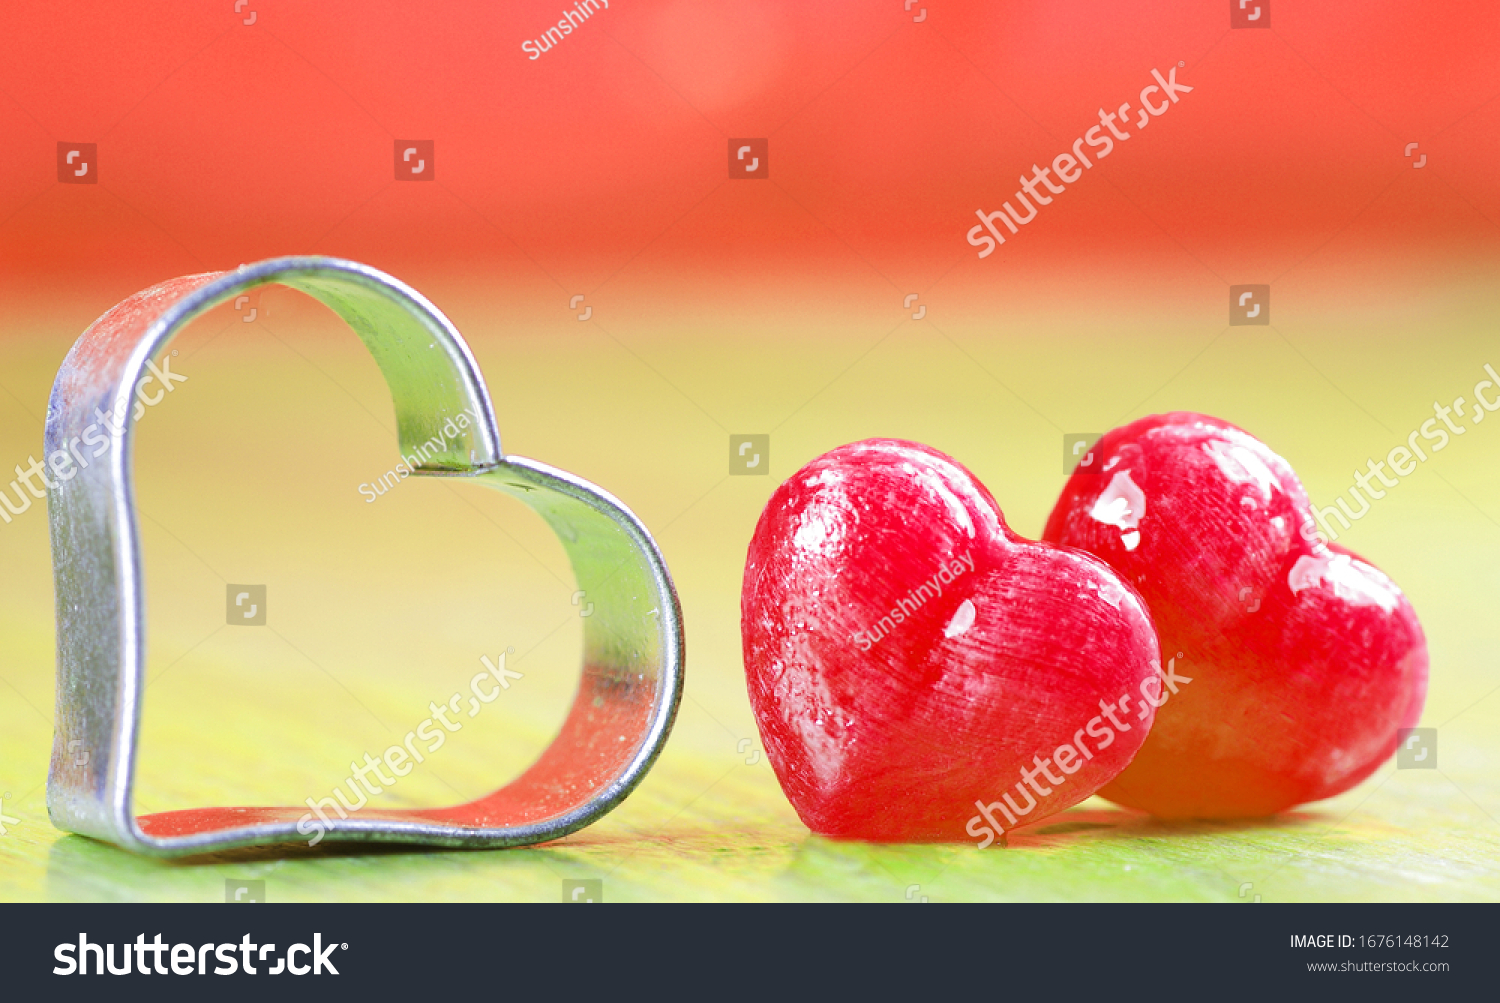 stock-photo-two-sweet-pink-candy-hearts-